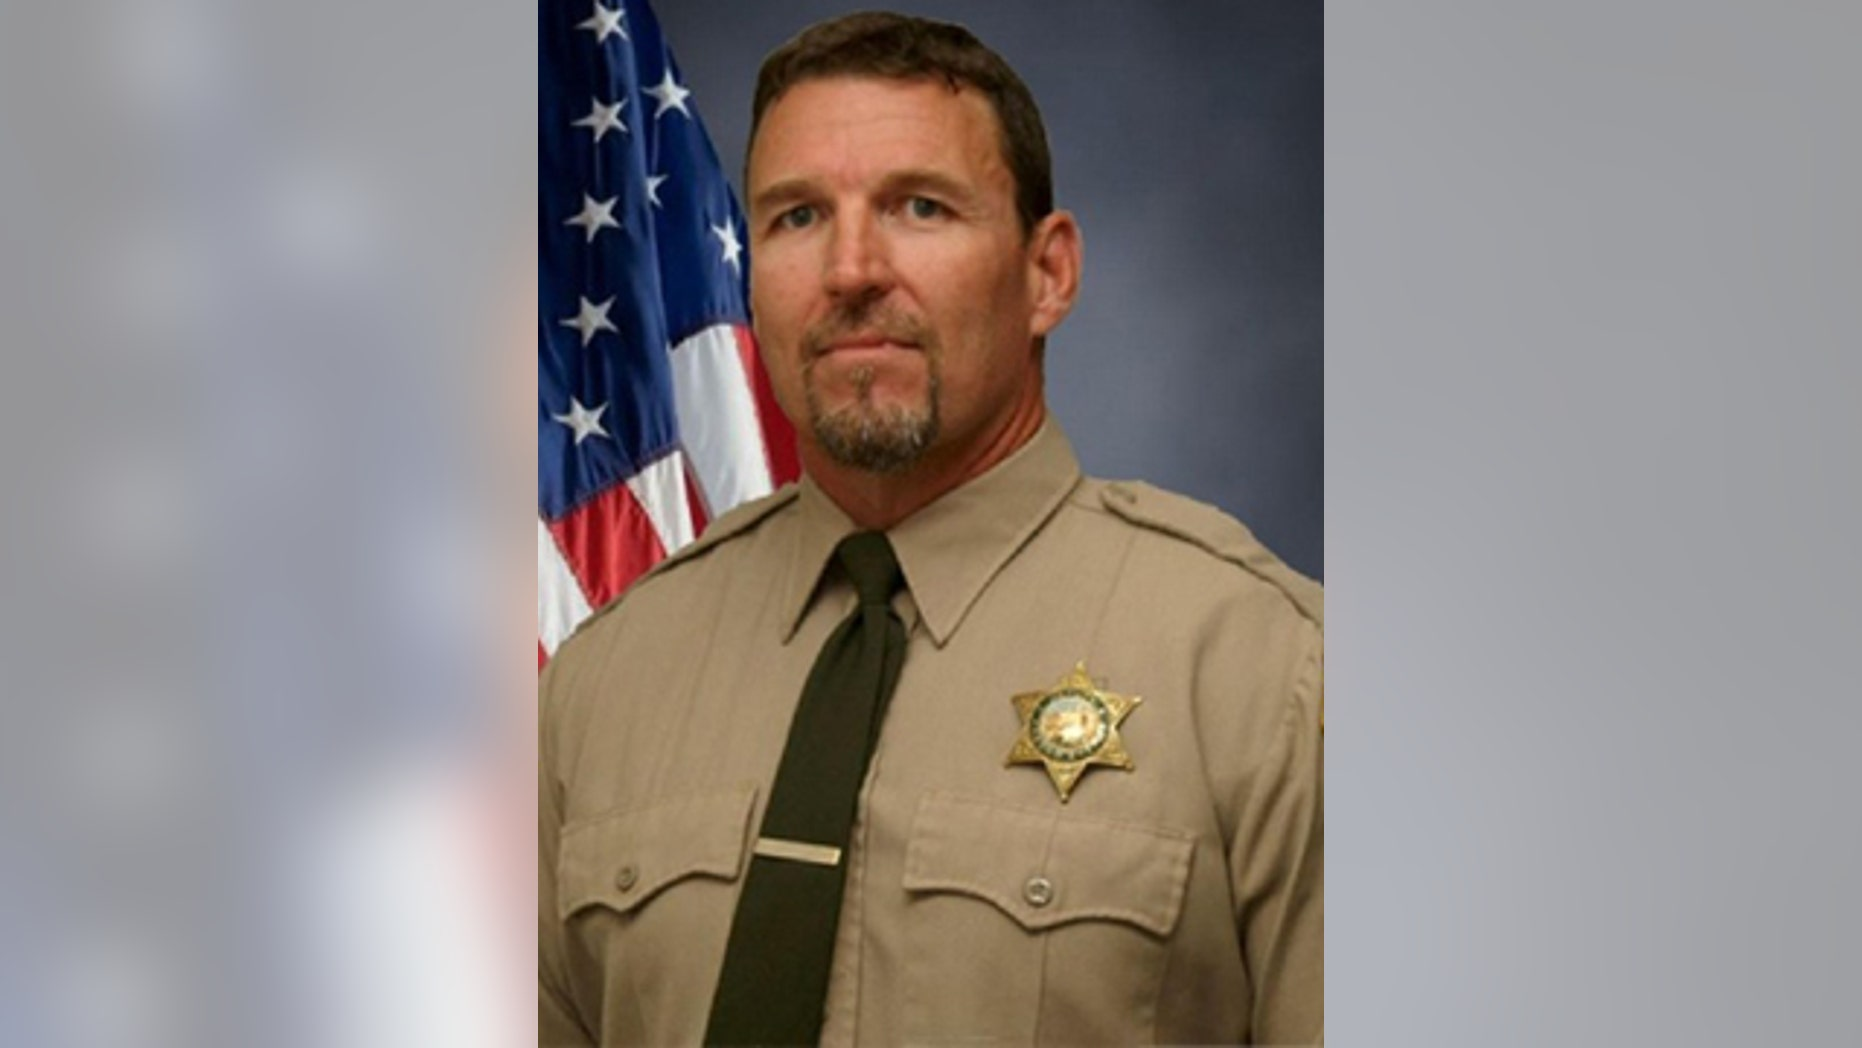 This undated photo shows Fresno County Sheriff's Deputy Sgt. Rod Lucas.